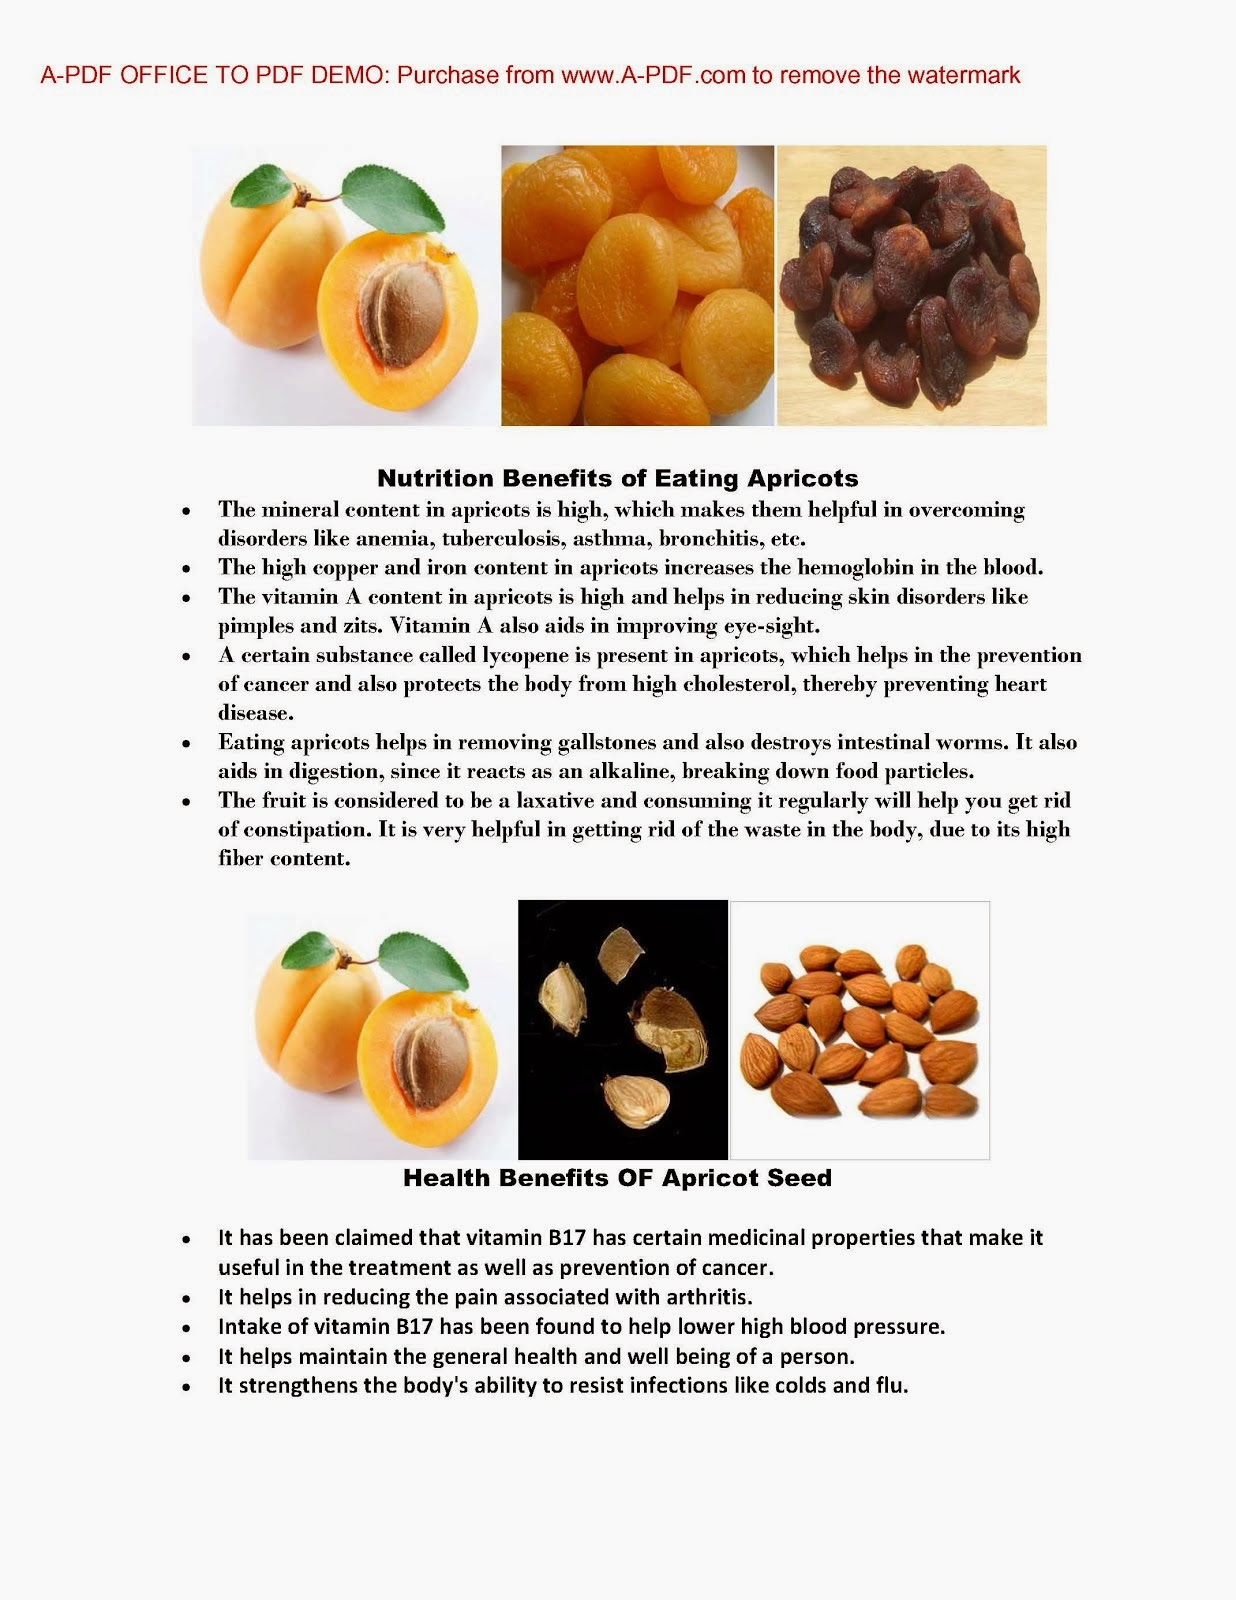 Benefit of Apricot